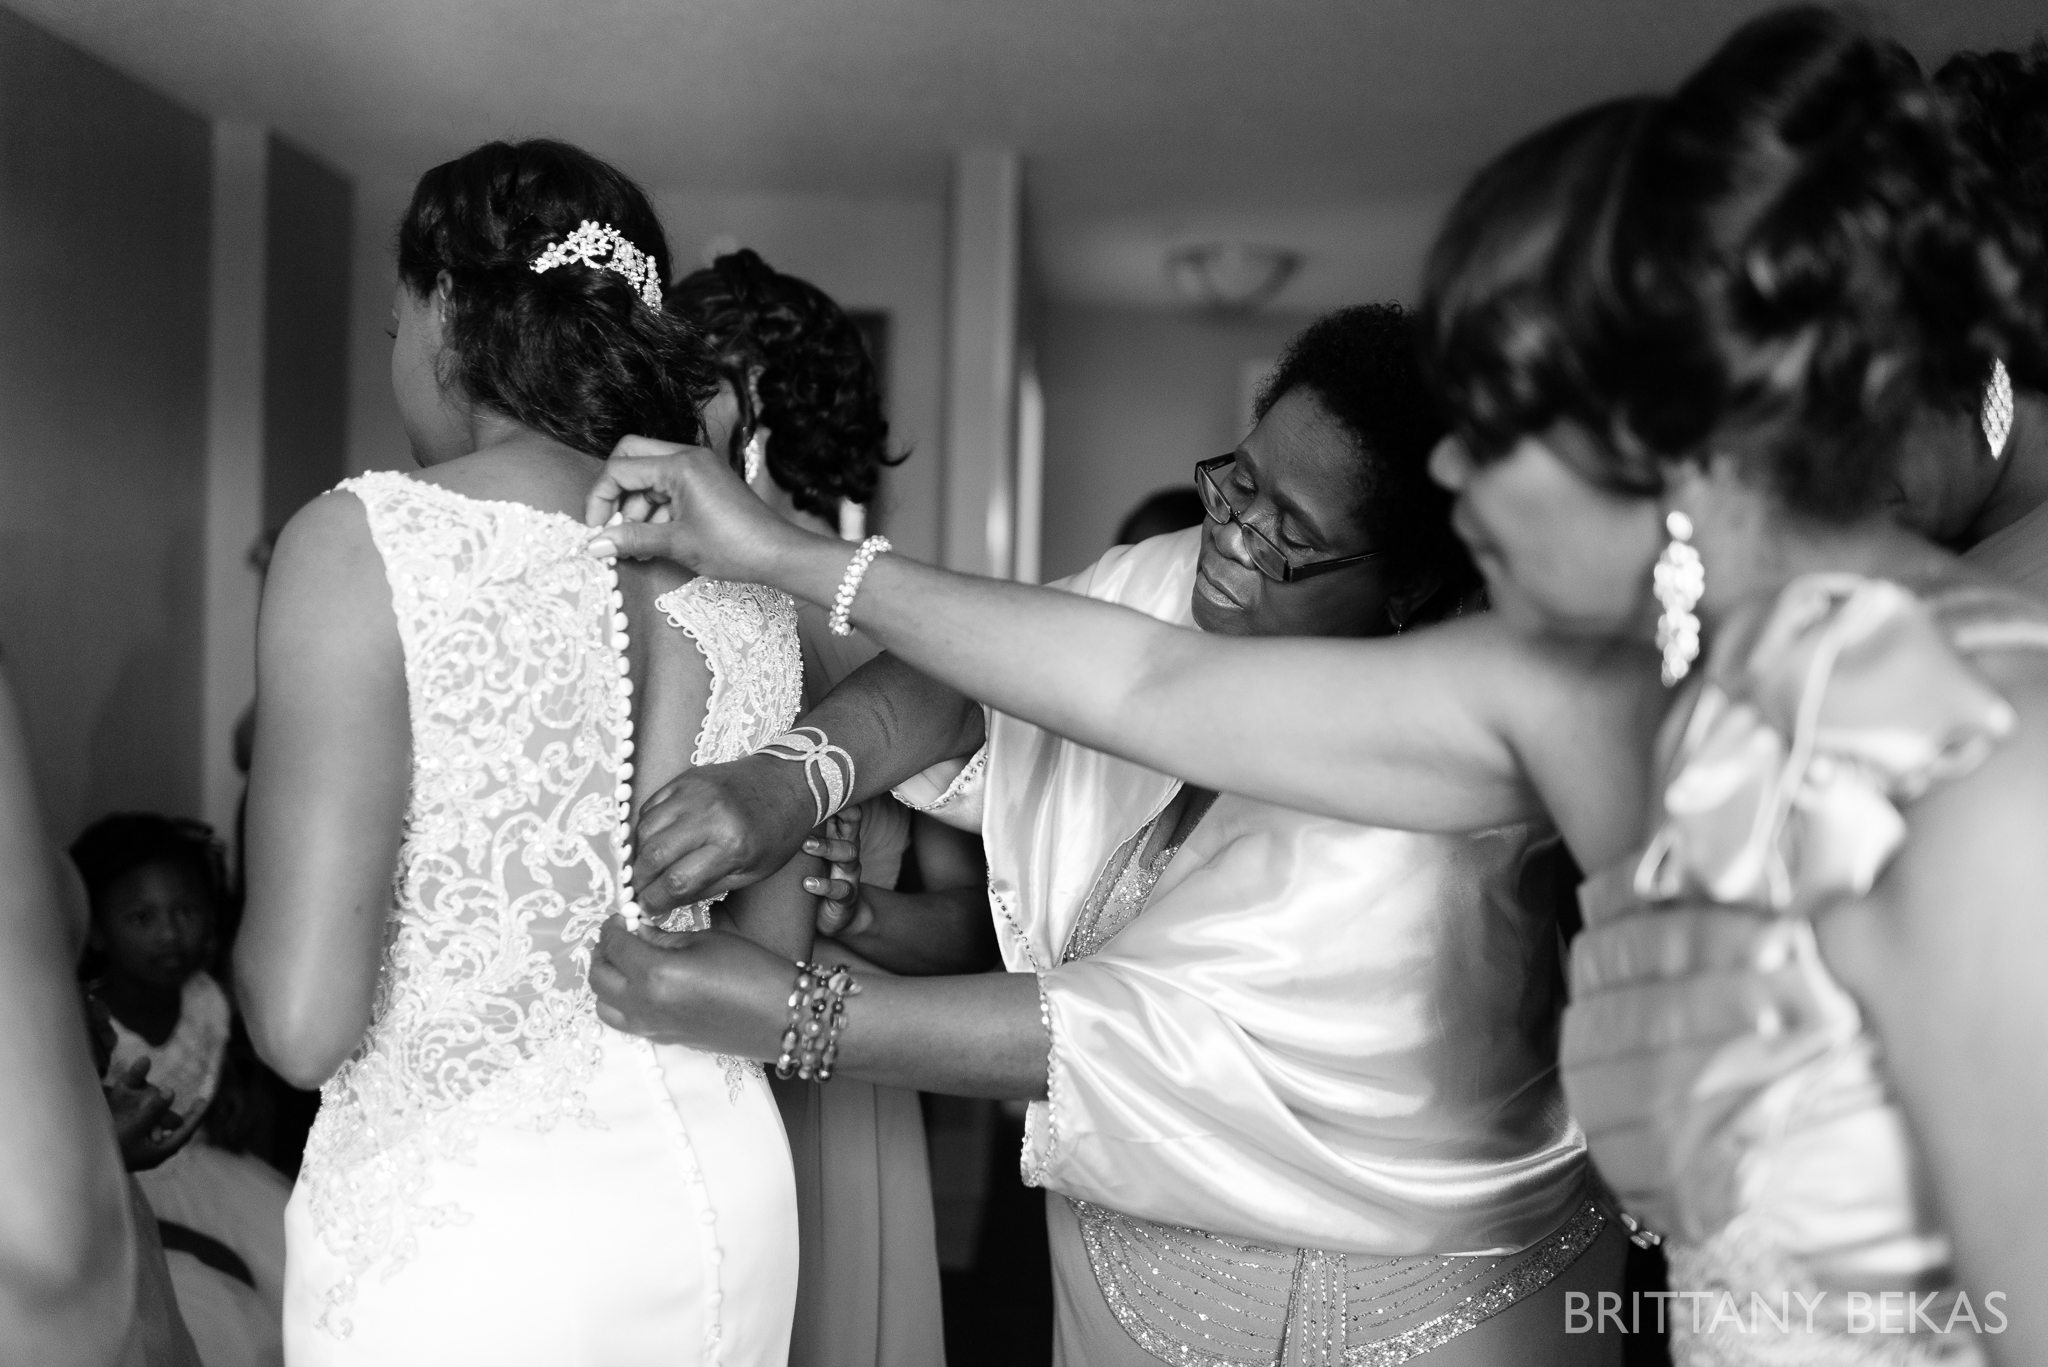 Patrick Haley Mansion Wedding - Brittany Bekas Photography_0005